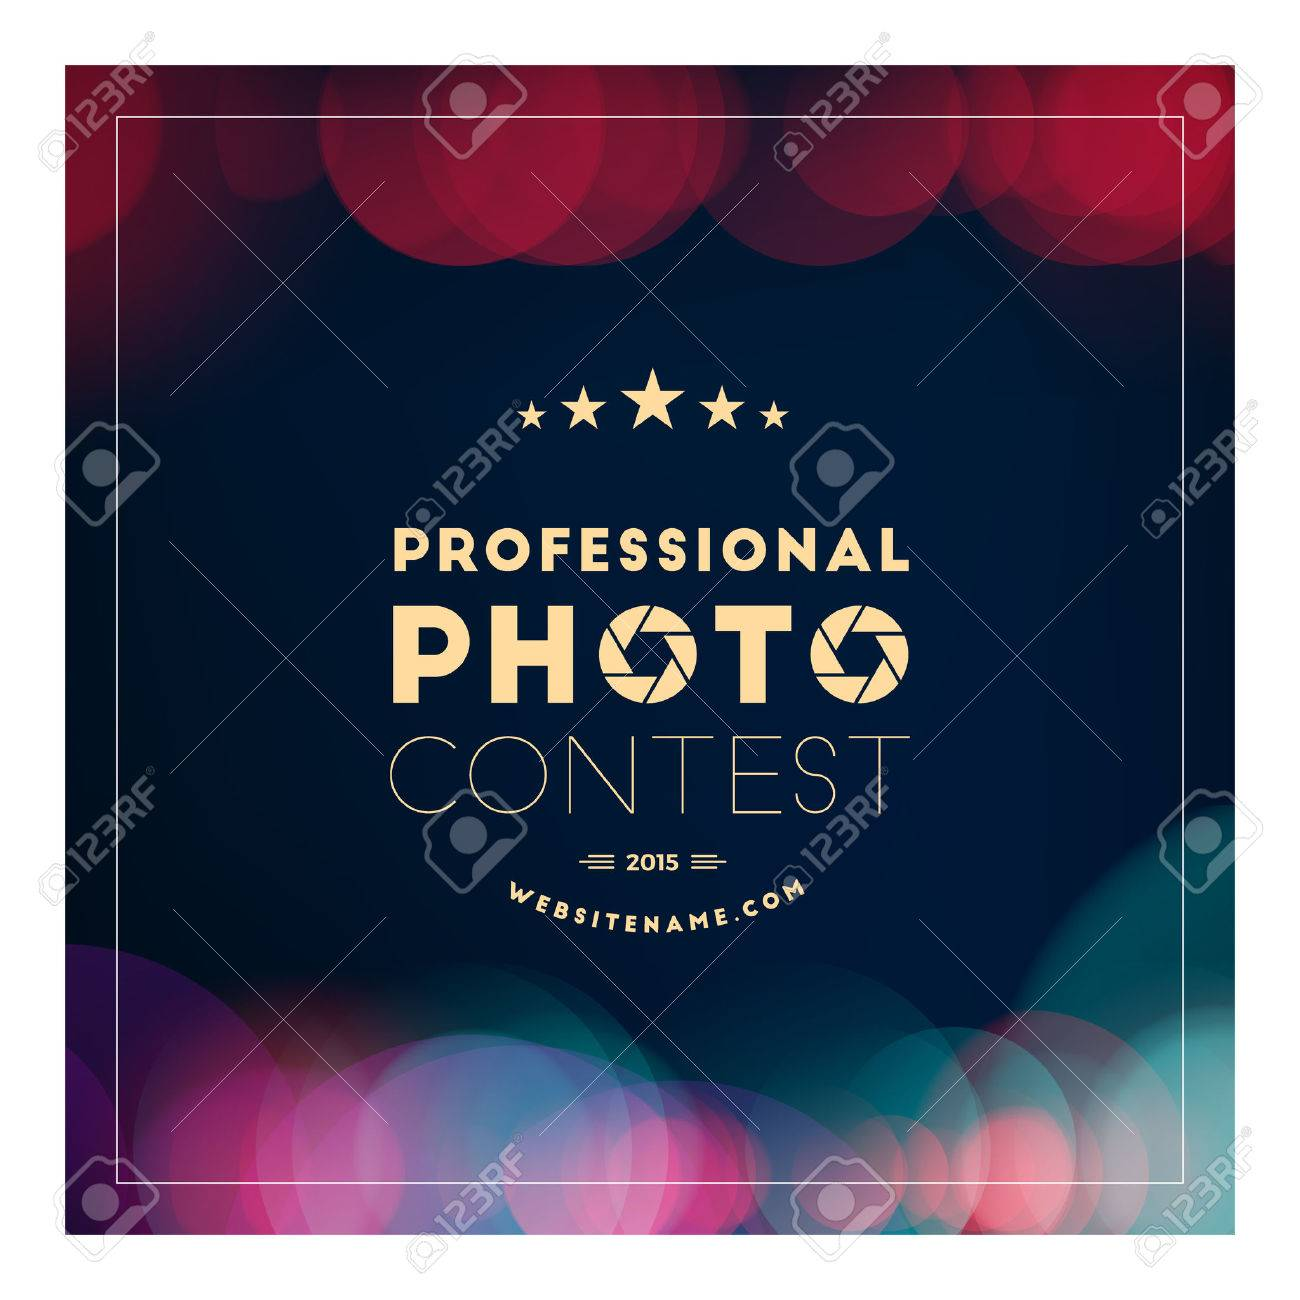 contest clipart.html